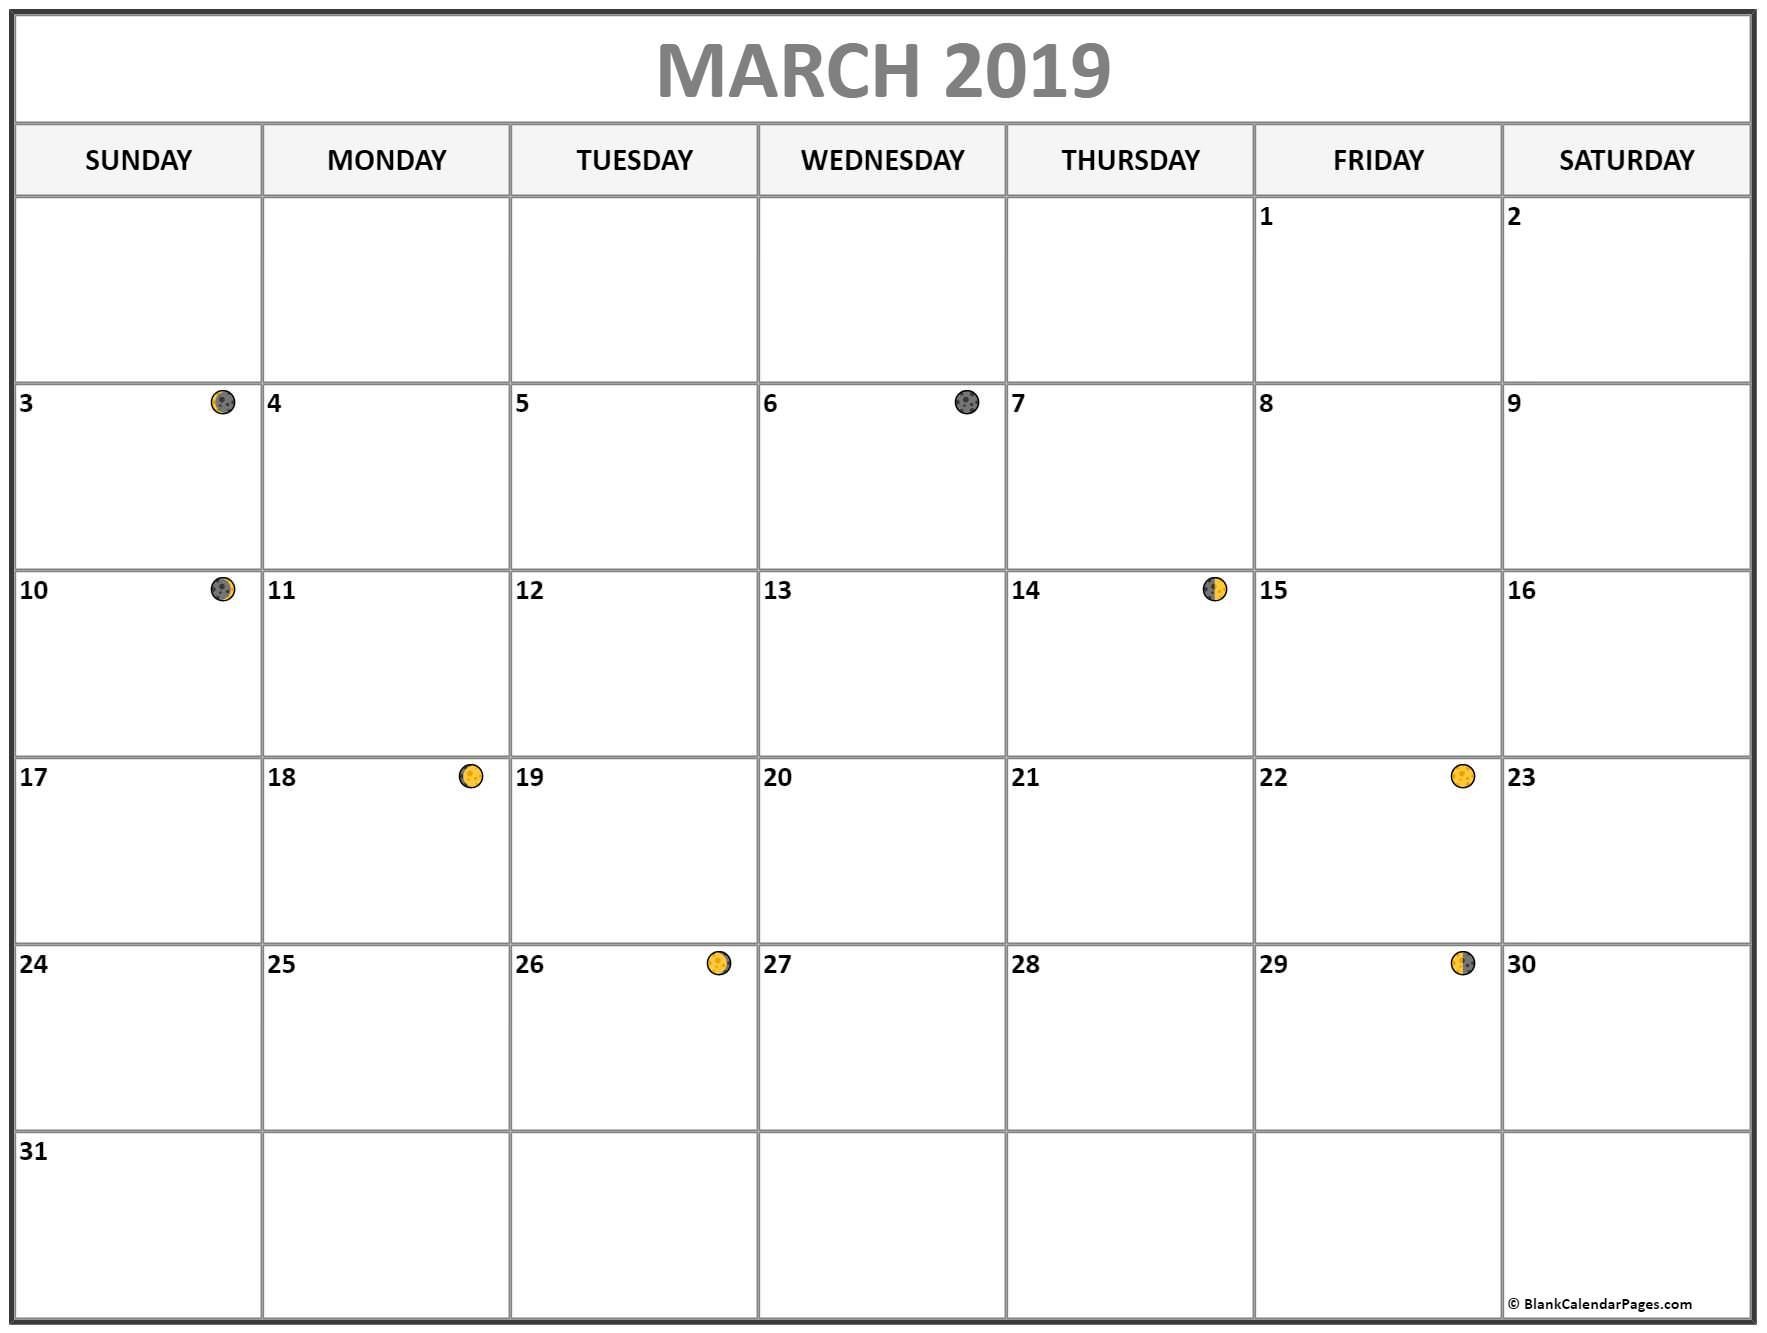 March 2019 Lunar Calendar Moon Phase Calendar With Usa Holidays